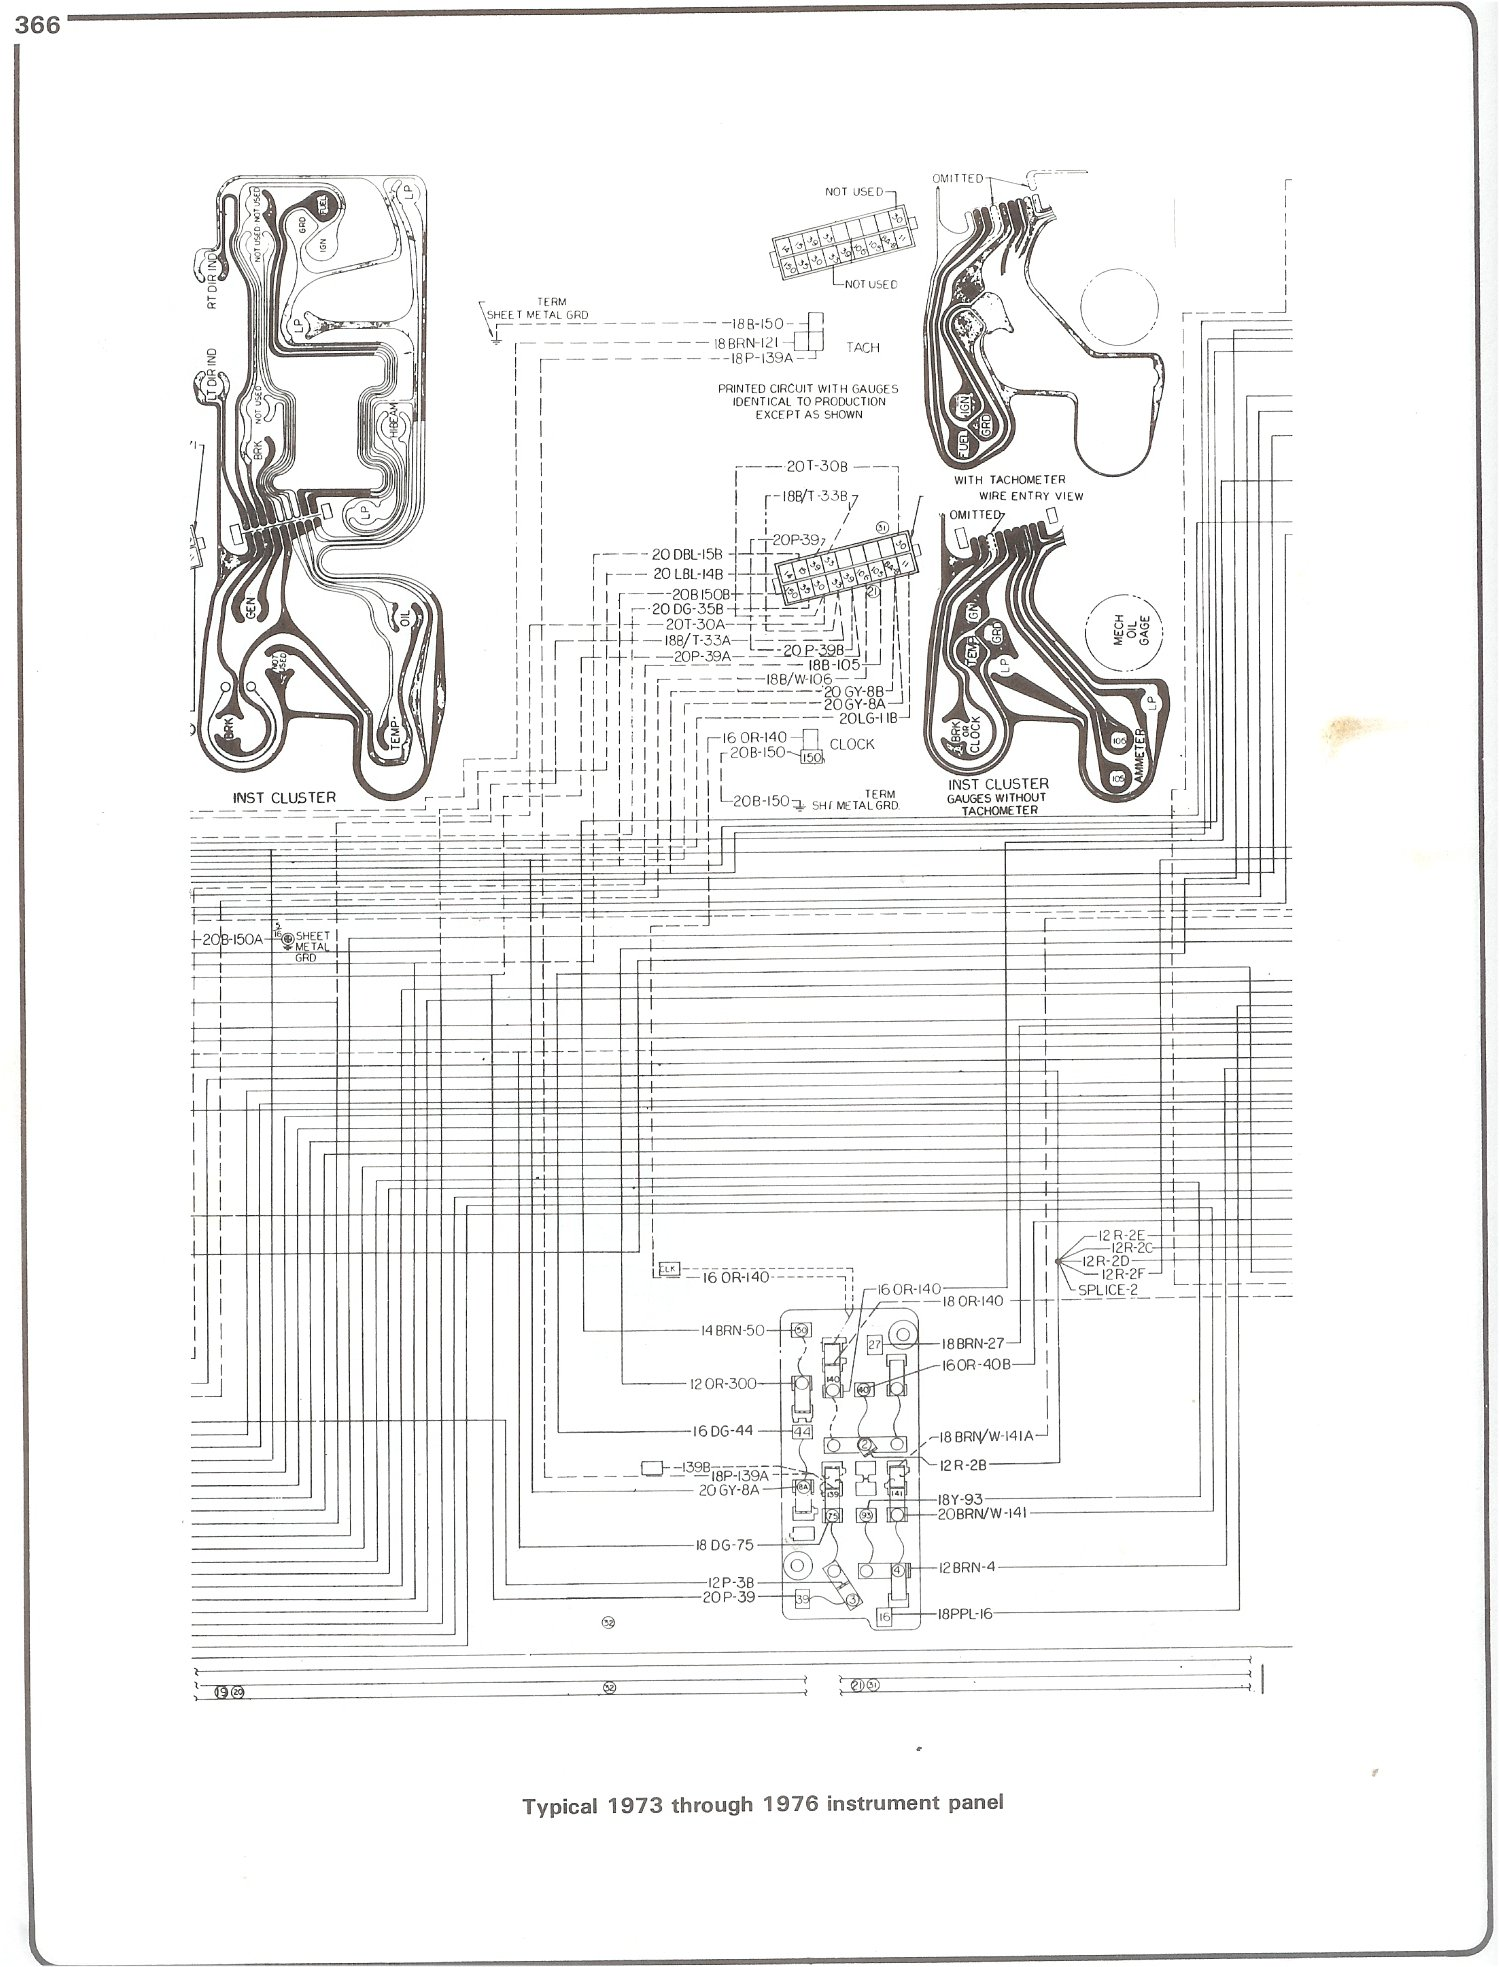 complete 73 87 wiring diagrams rh forum 73 87chevytrucks com 1978 Chevy Truck Wiring Diagram 78 chevy c10 wiring diagram